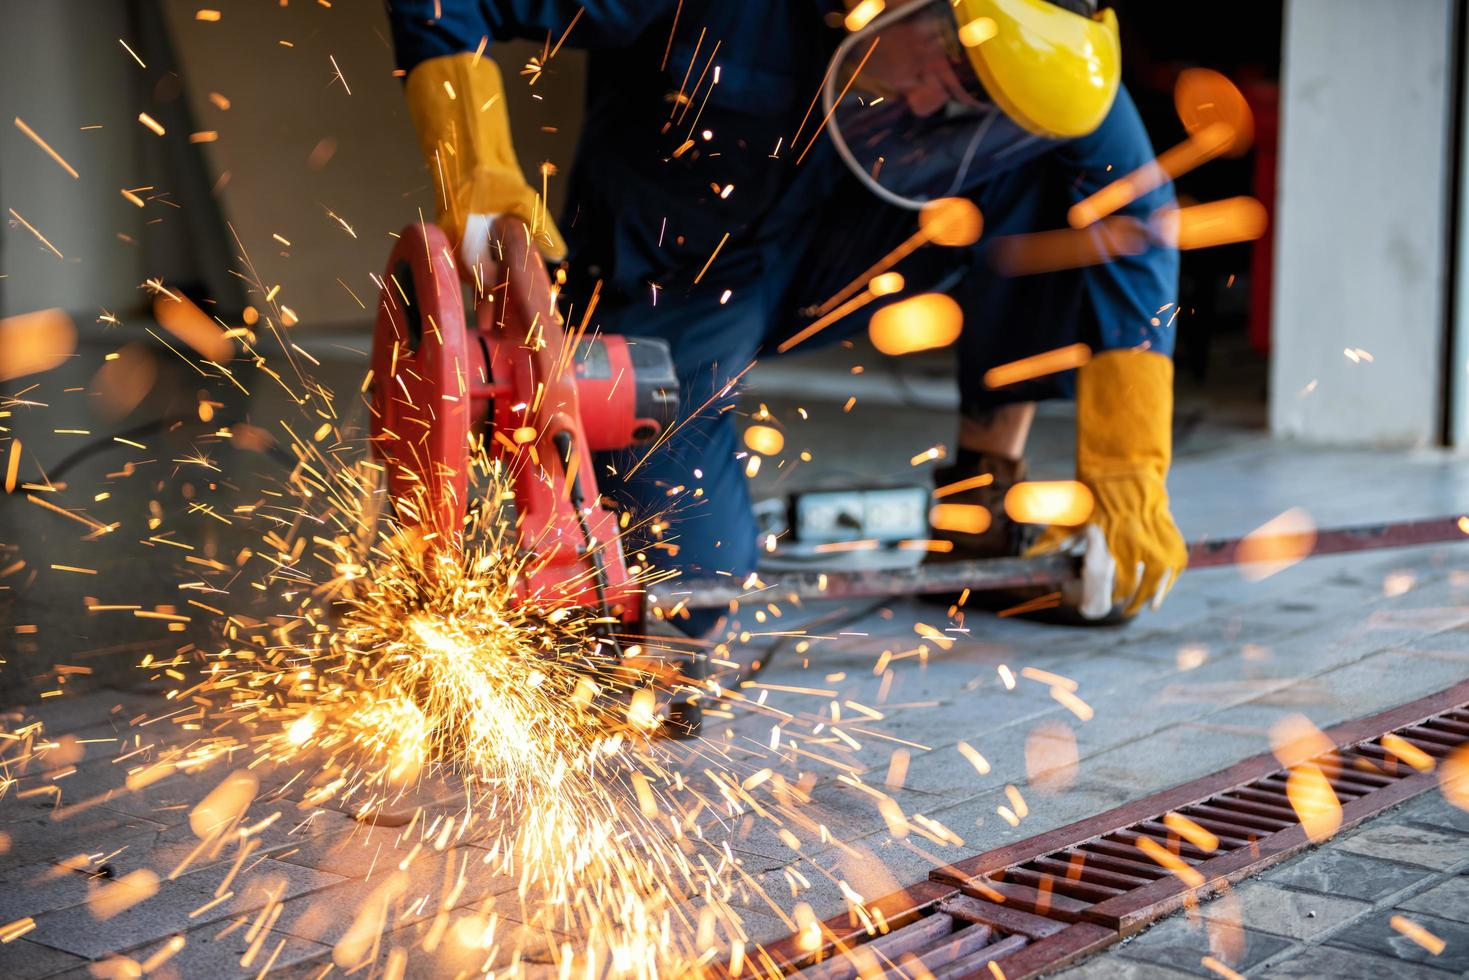 Sparks fly as a welder cuts steel on construction site photo